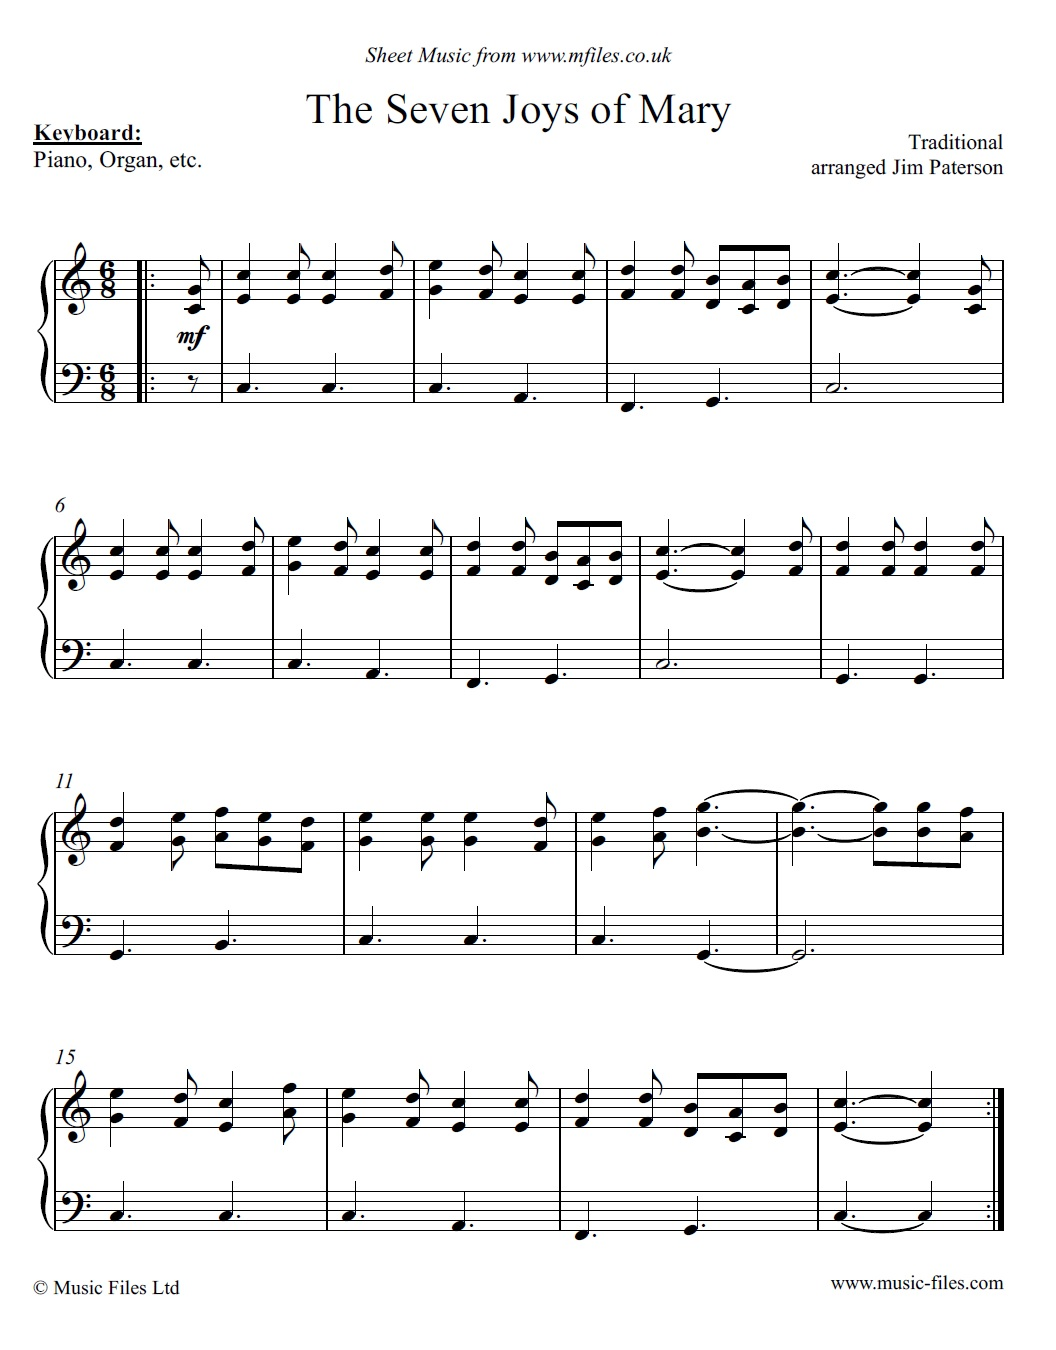 The Seven Joys of Mary - piano sheet music 1st page